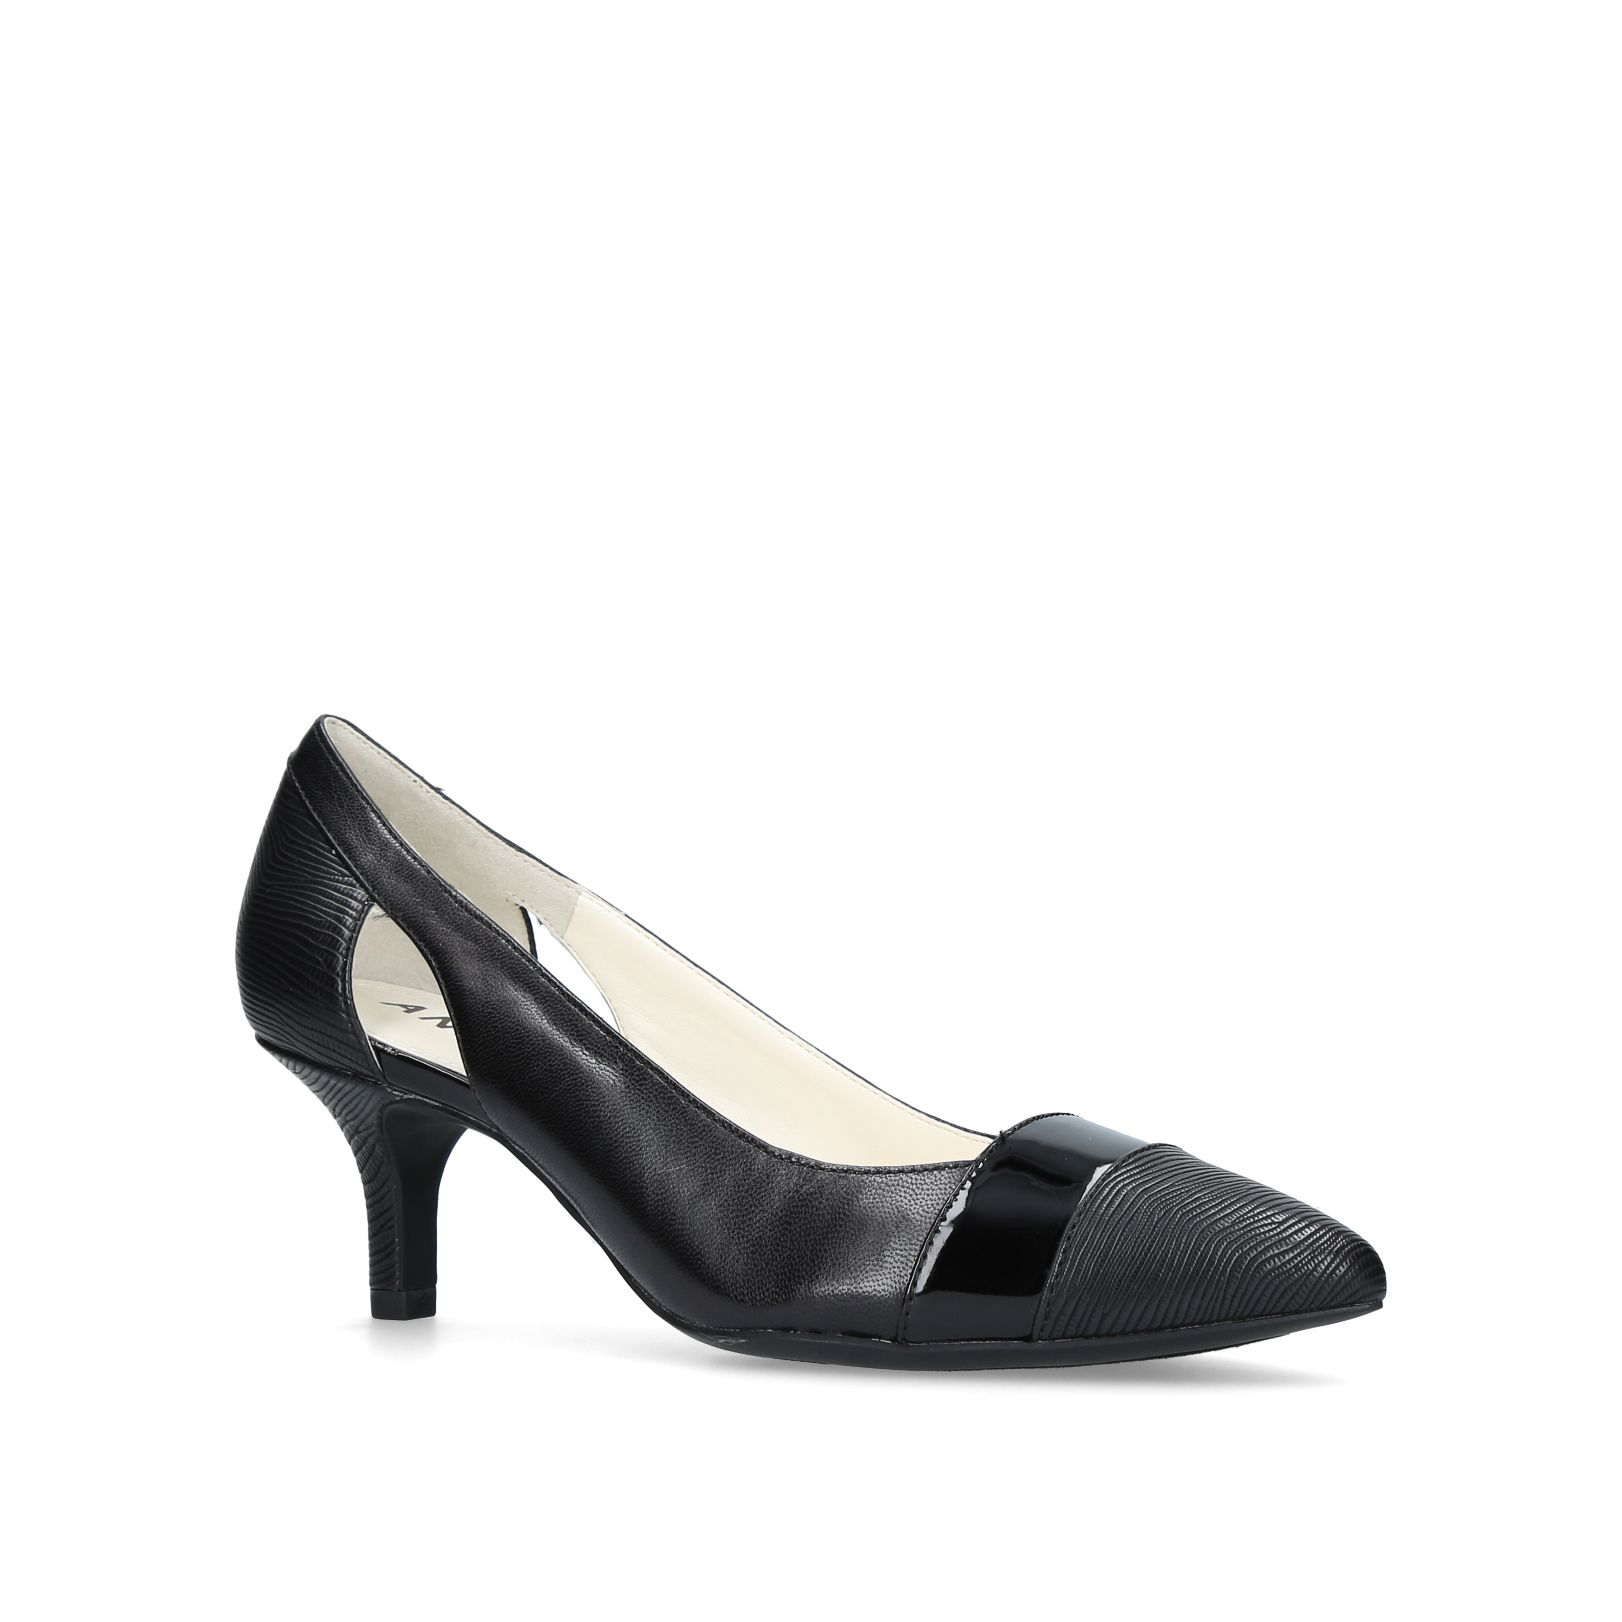 Anne Klein First Class Courts, Black